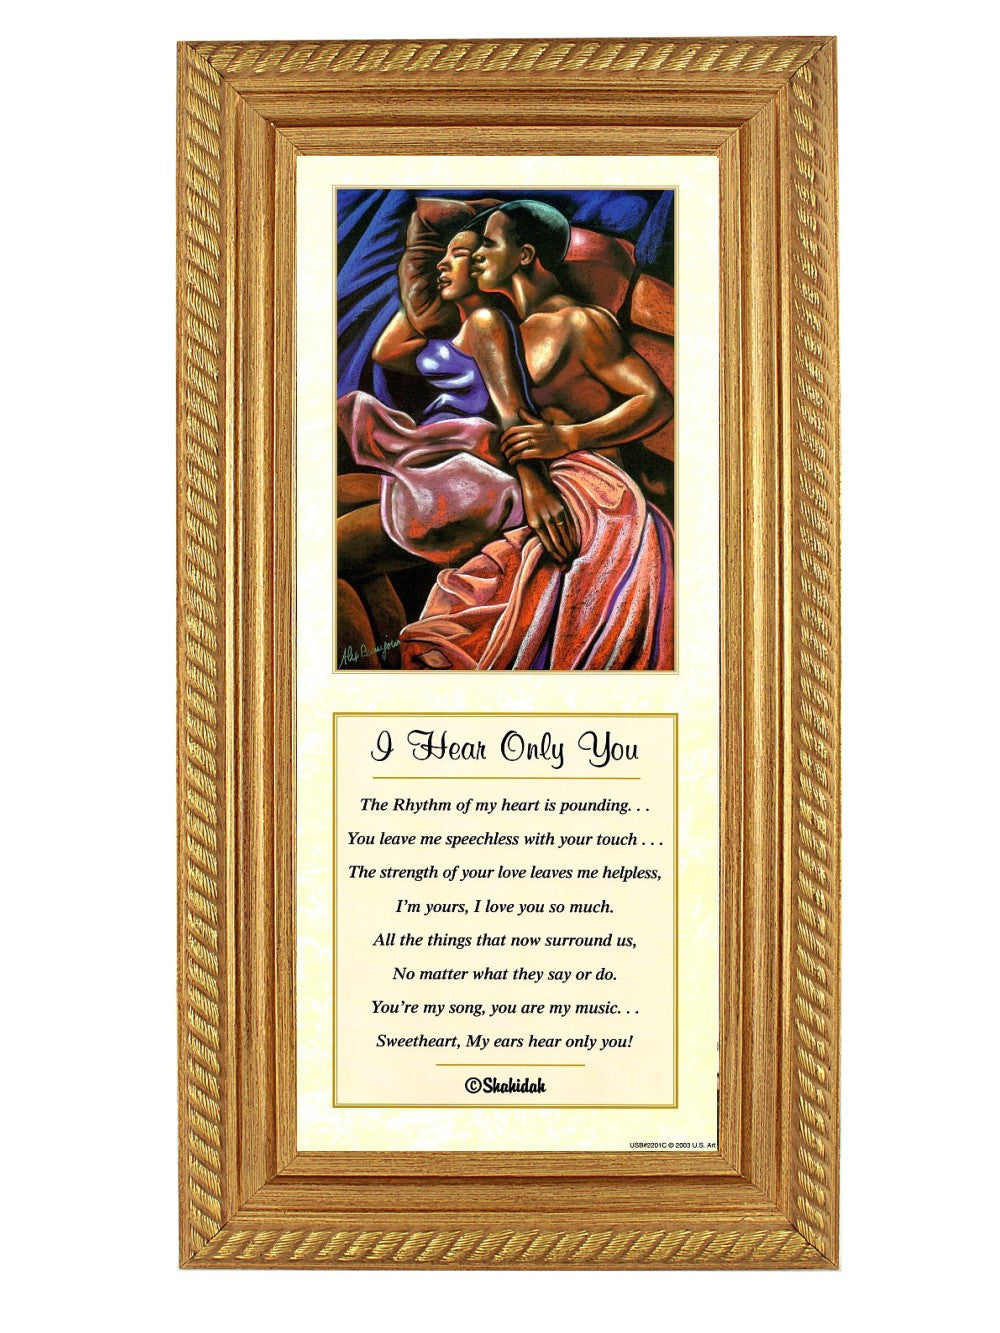 I Hear Only You by Alix Beajour and Shahidah (Gold Rope Frame)